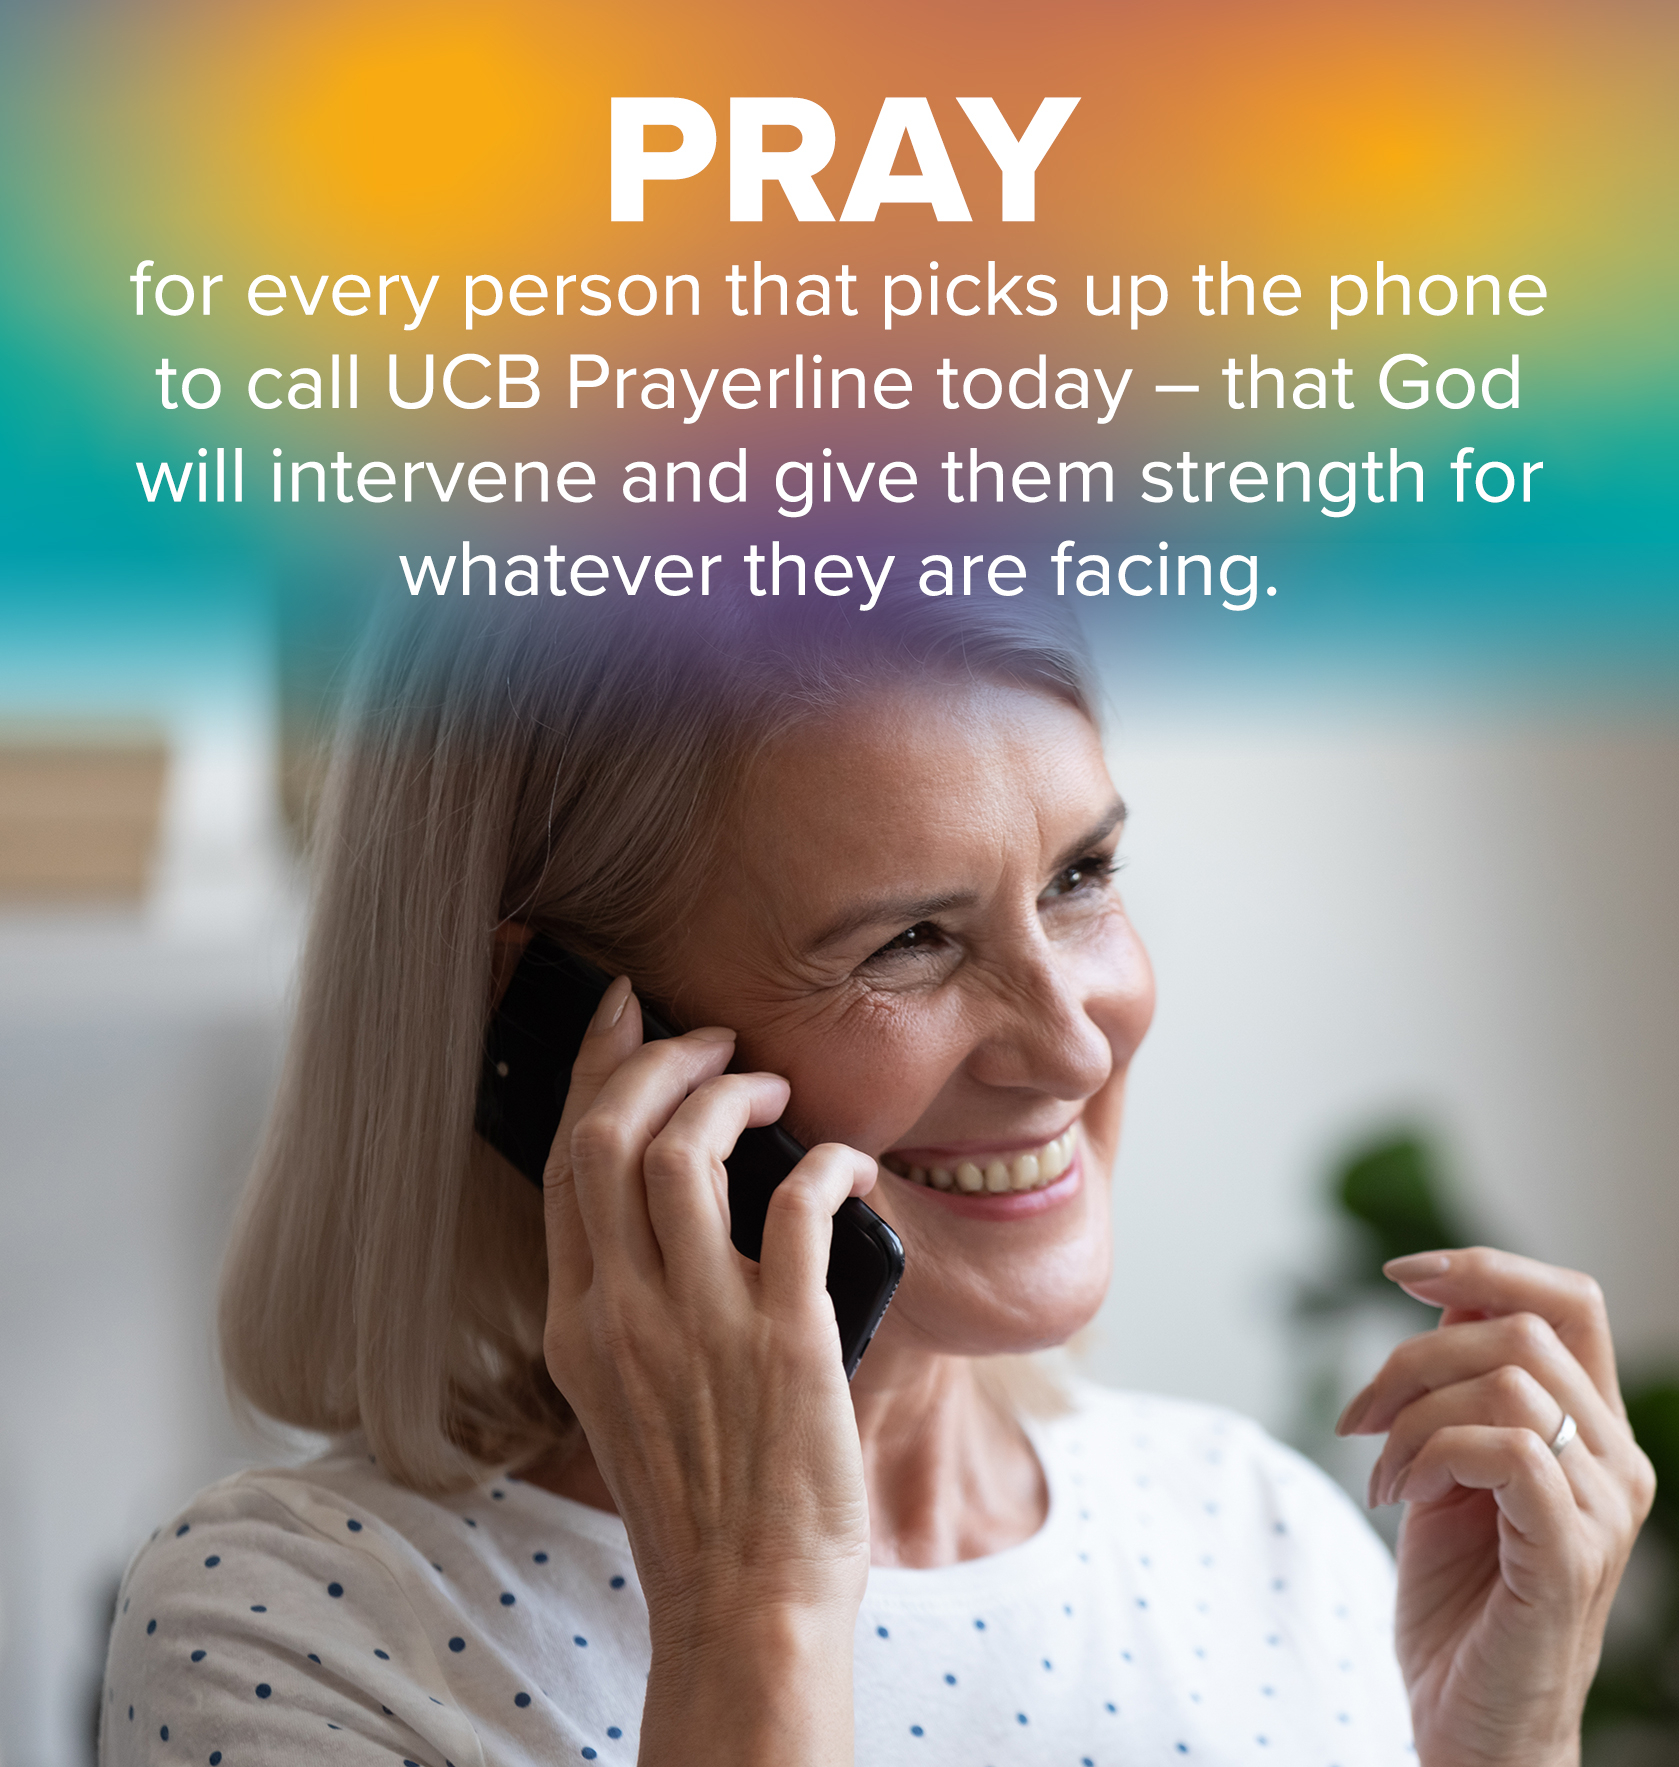 Pray for every person that picks up the phone to call UCB Prayerline today – that God will intervene and give them strength against whatever they are facing.